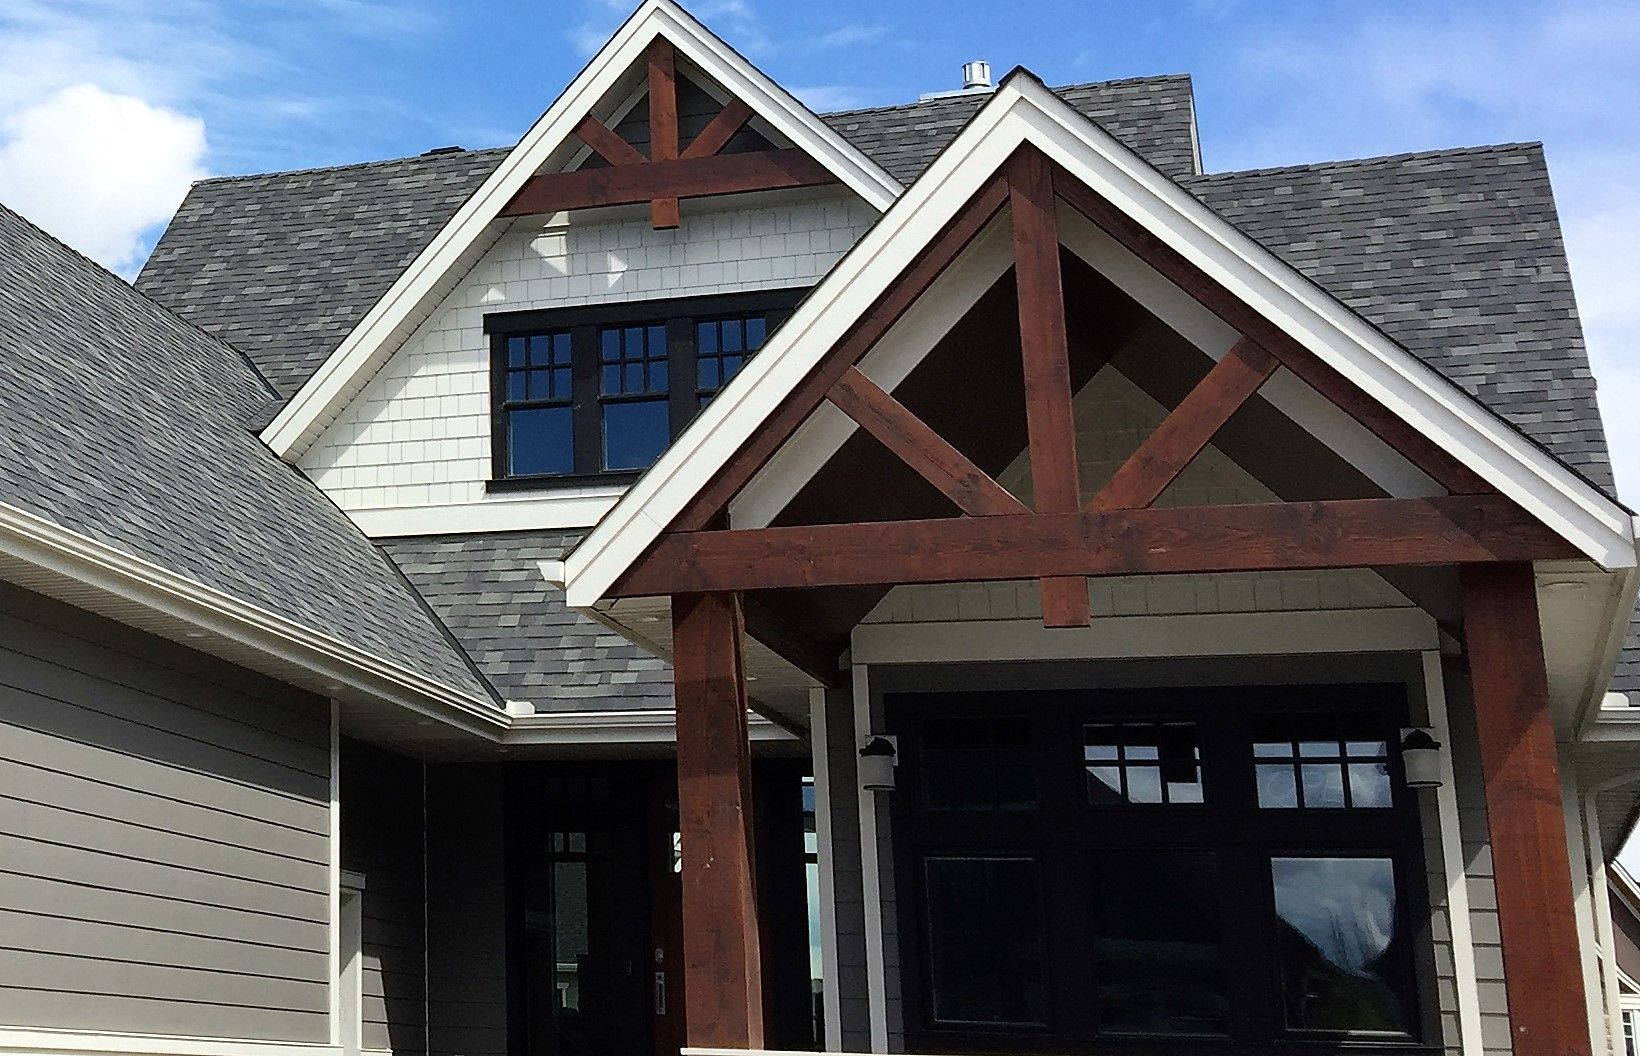 Timber Frame Trusses In Open Gable And Front Porch Roof. #